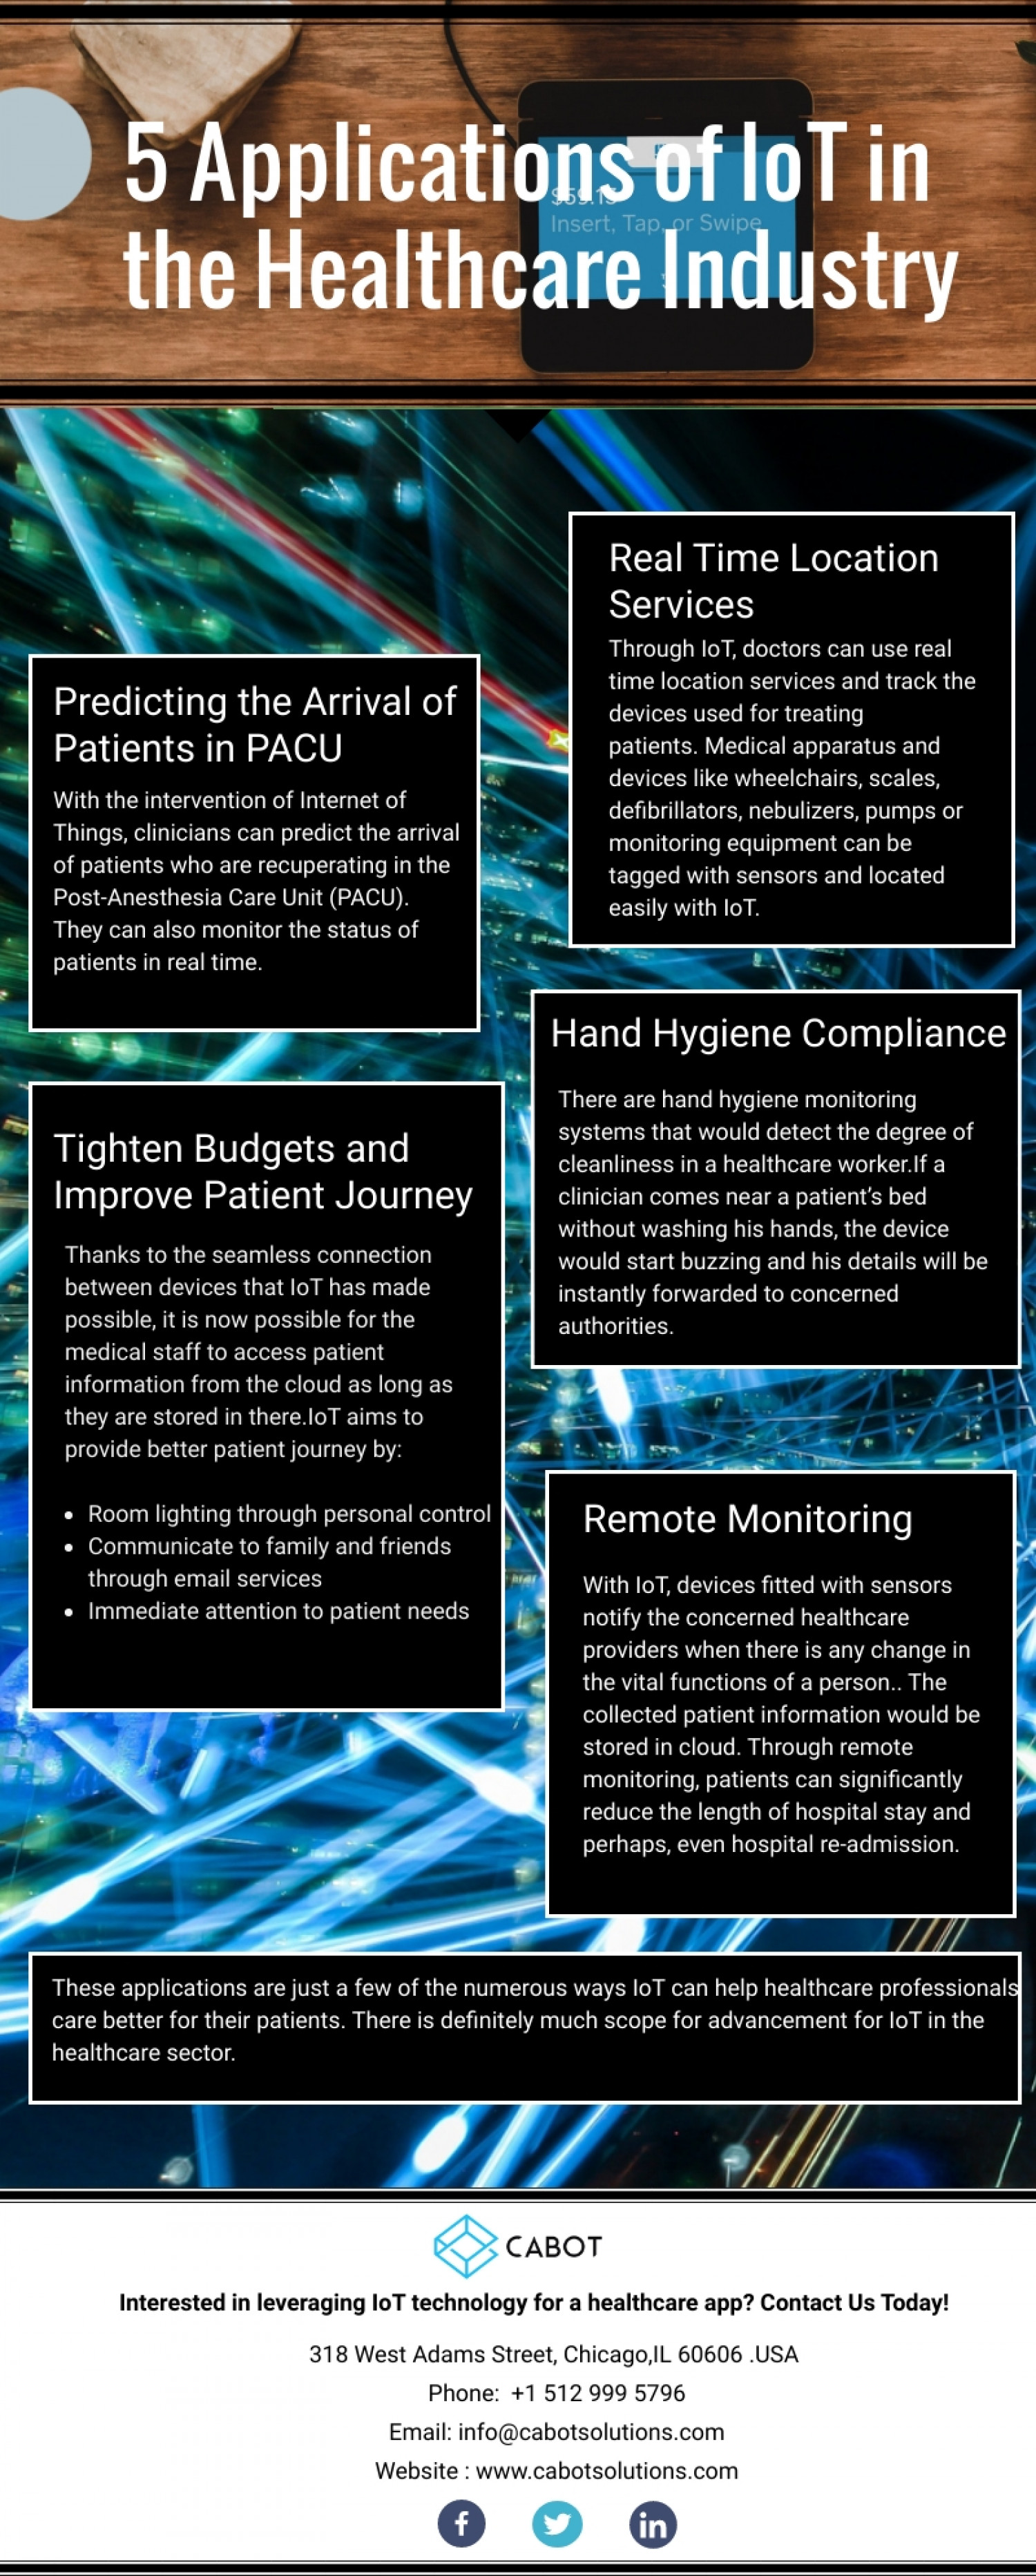 5 Applications of IoT in the Healthcare Industry Infographic